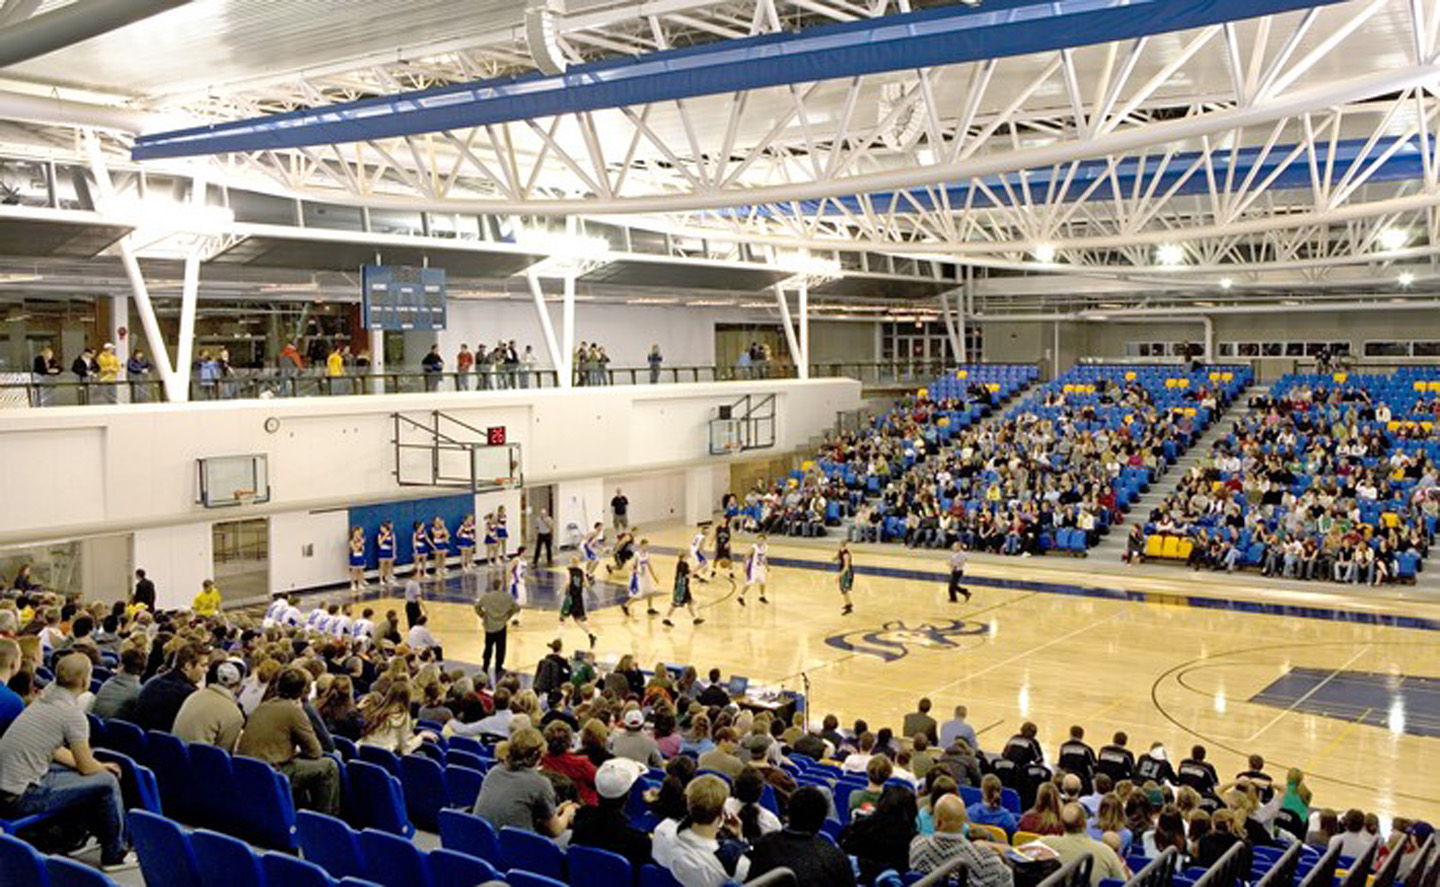 Fwba architects lethbridge calgary medicine hat and for How much is it to build a basketball gym